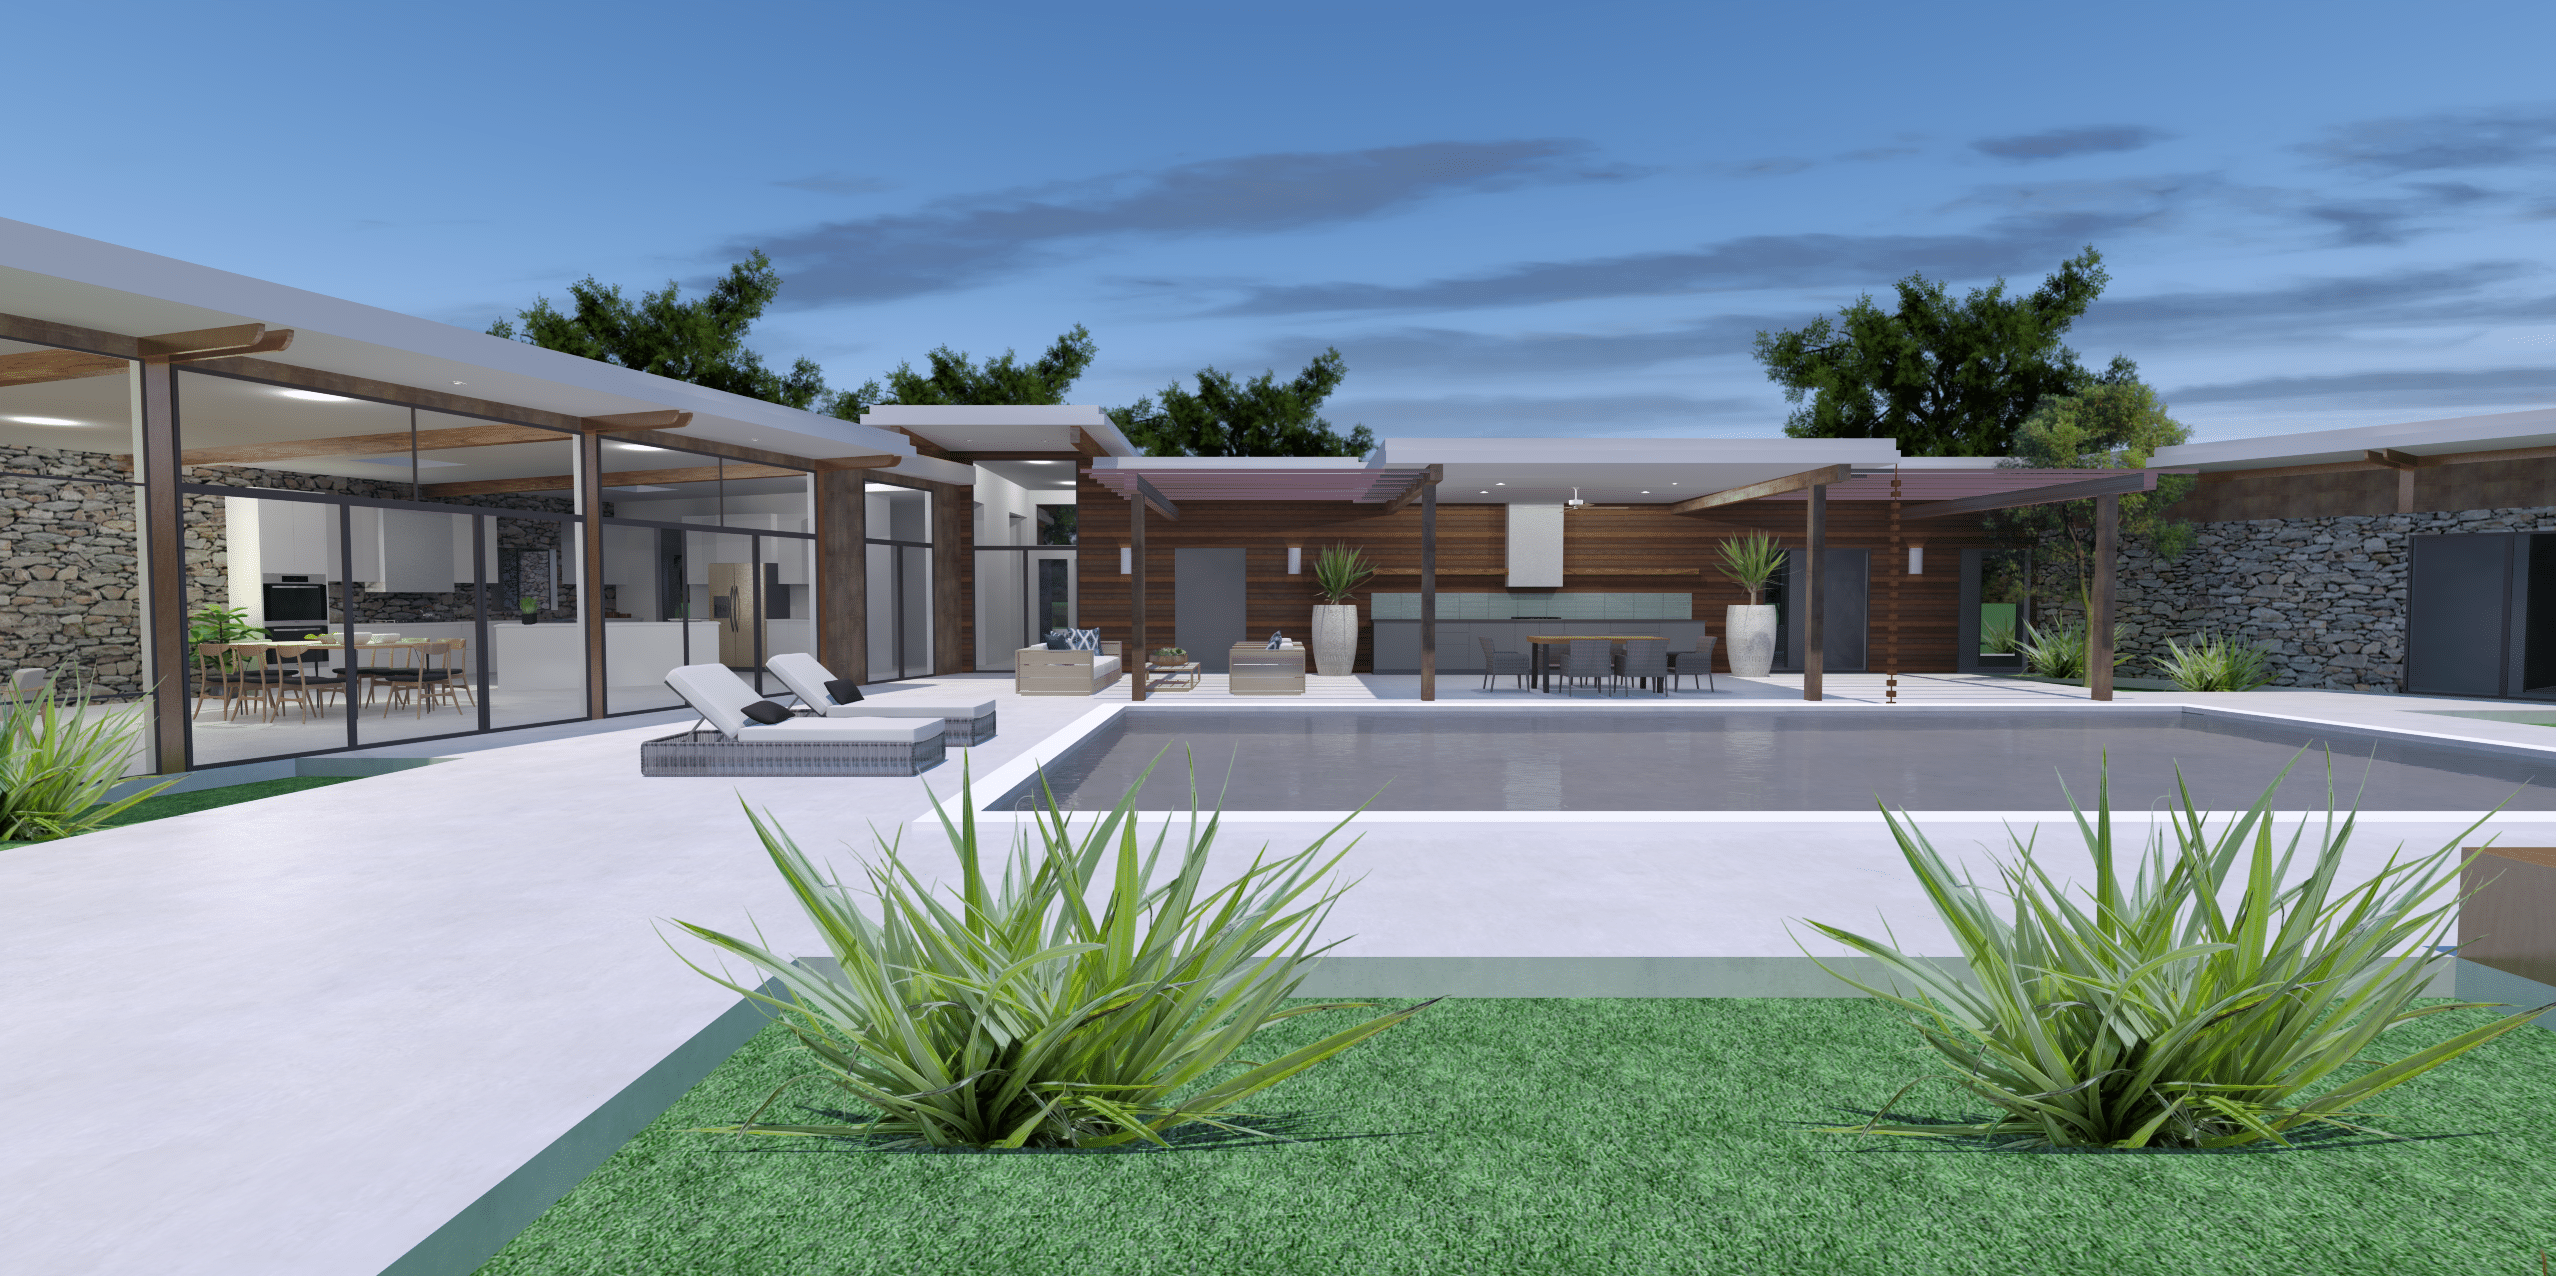 Cotter Residence - Chico, CA